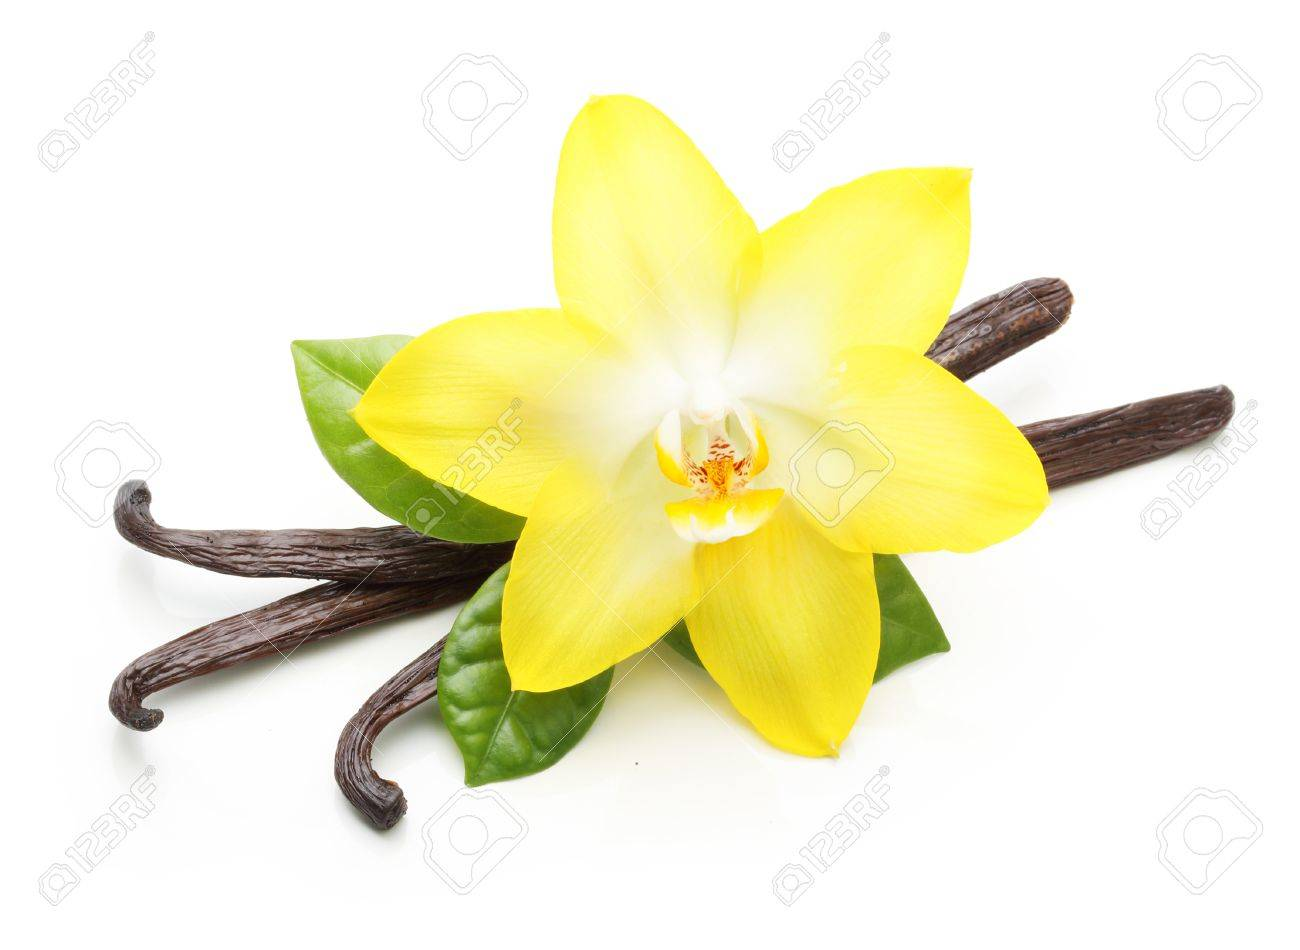 Vanilla pods and orchid flower isolated on white background - 61543909